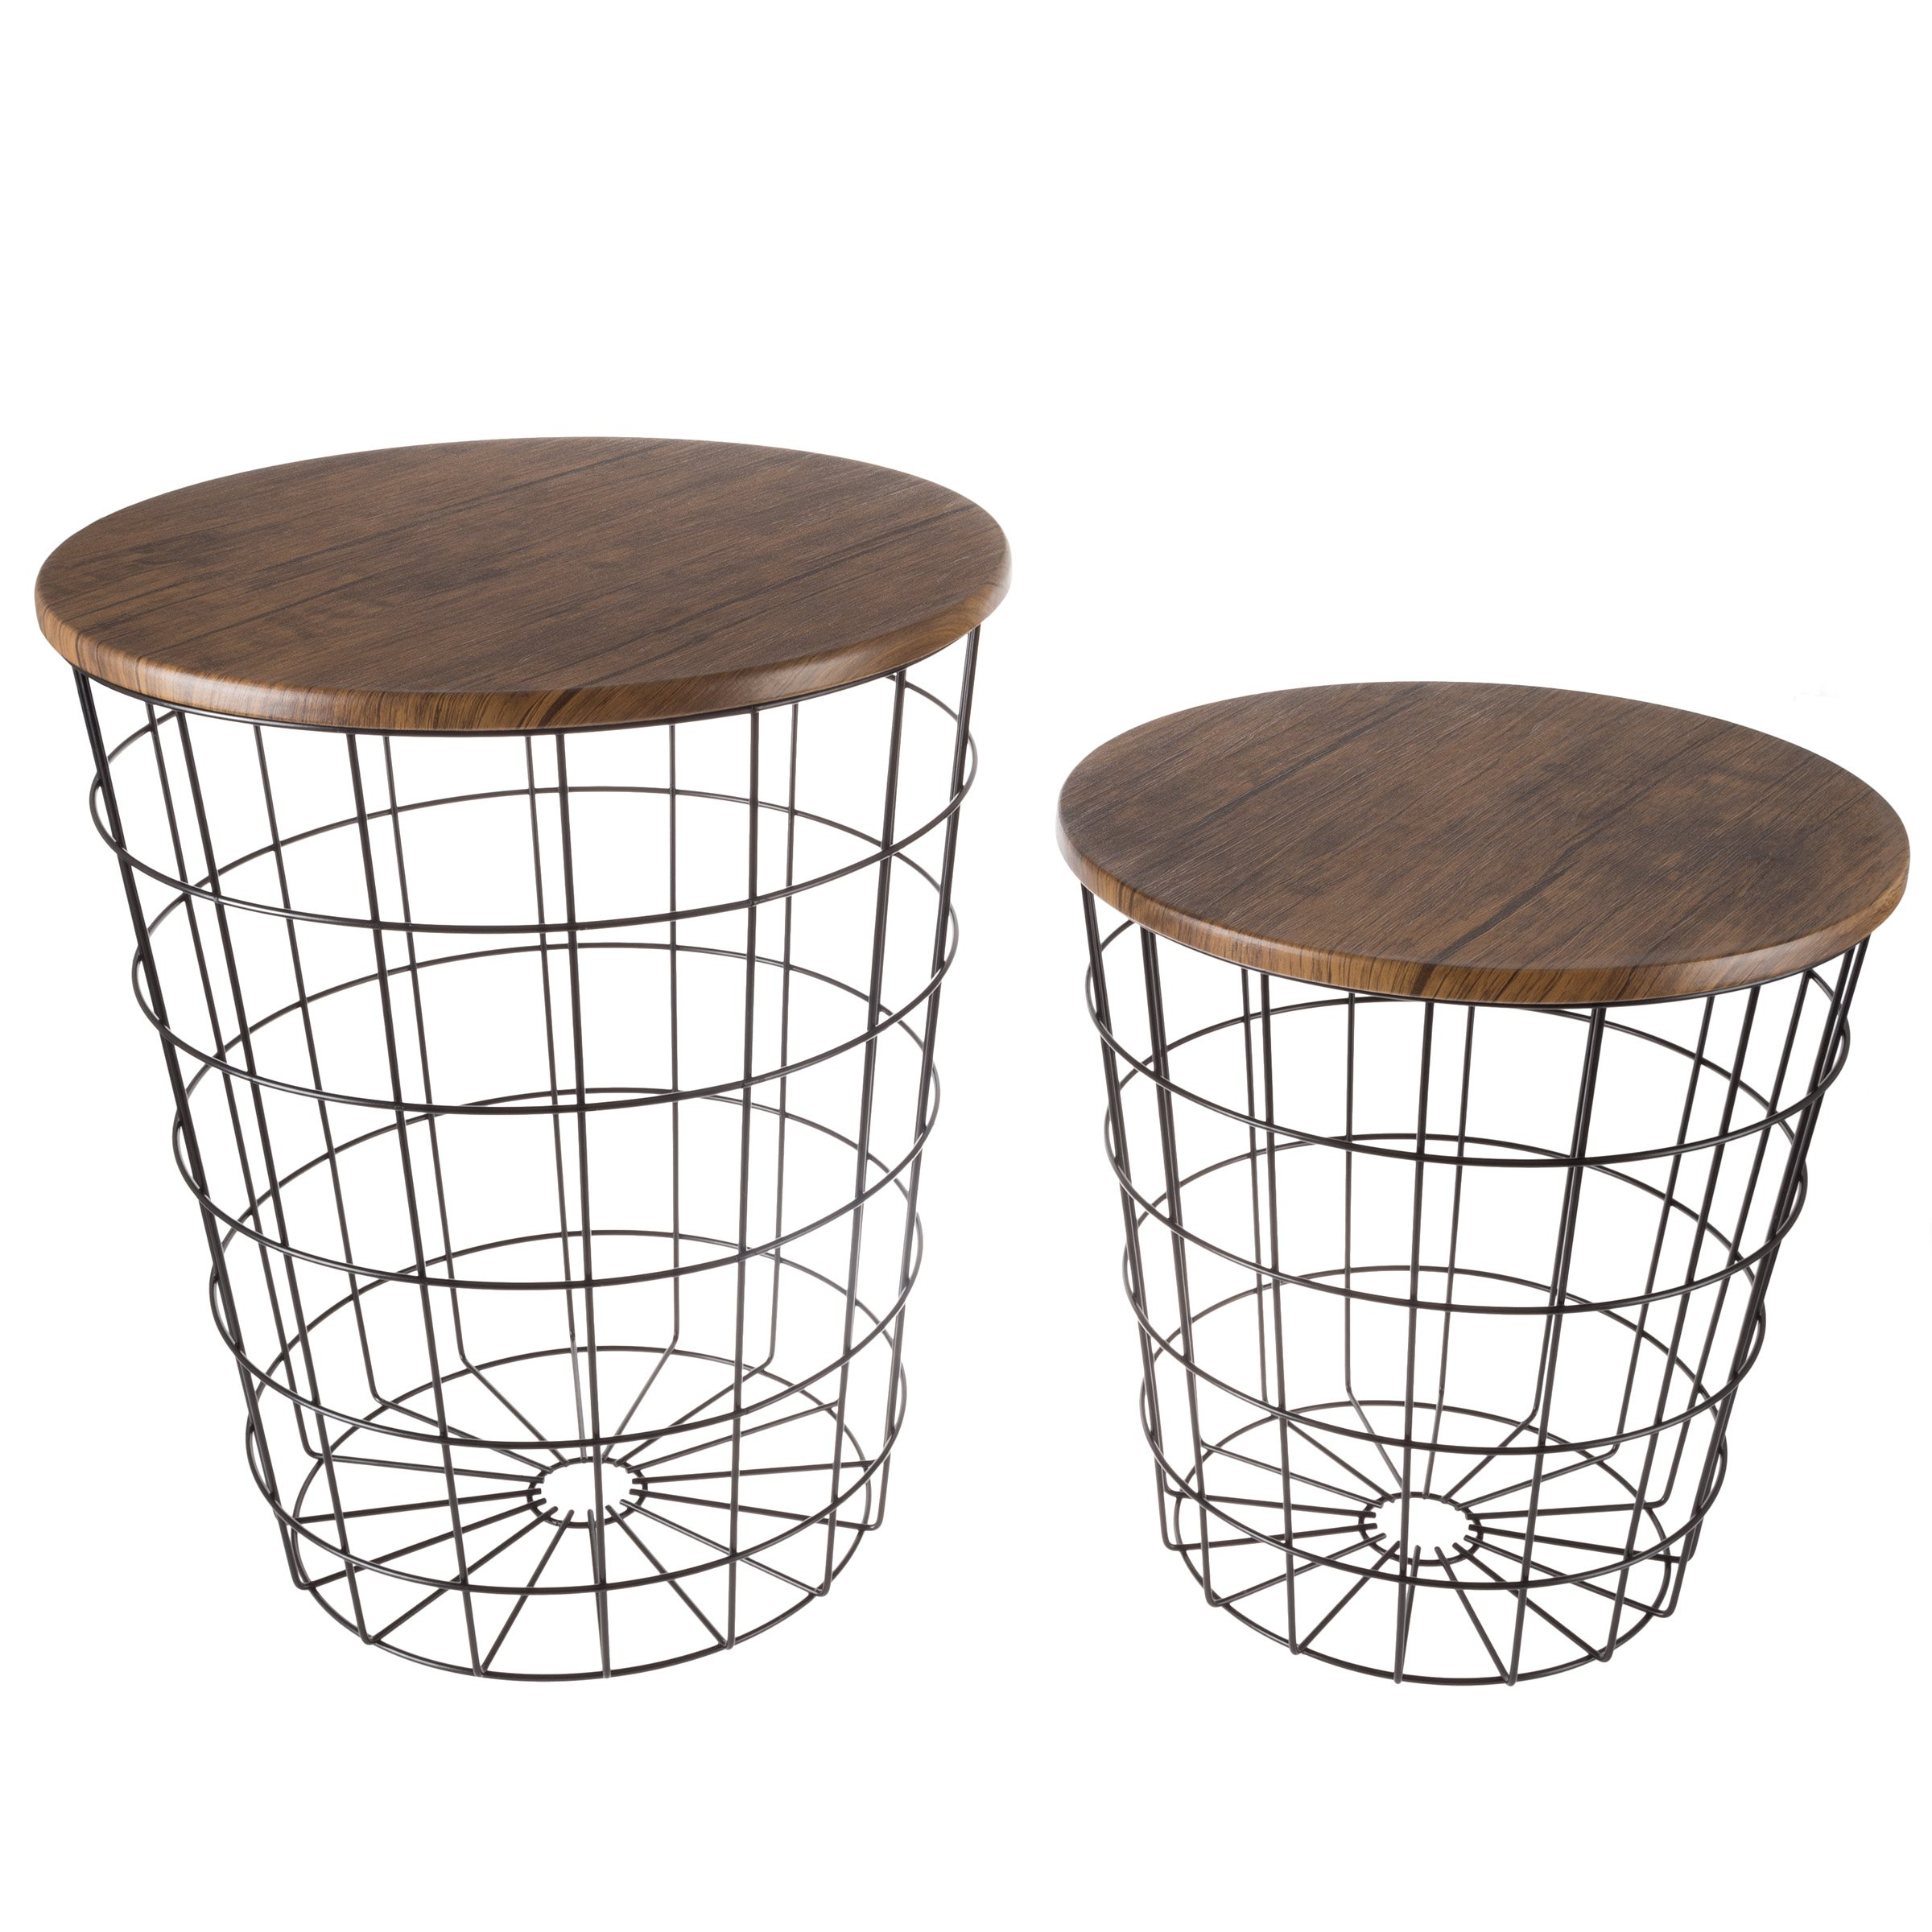 Lavish Home 80-ENDTBL-2 (Set of 2 Nesting End Storage Convertible Round Metal Basket Wood Veneer Top Accent Side Tables, Black by Lavish Home